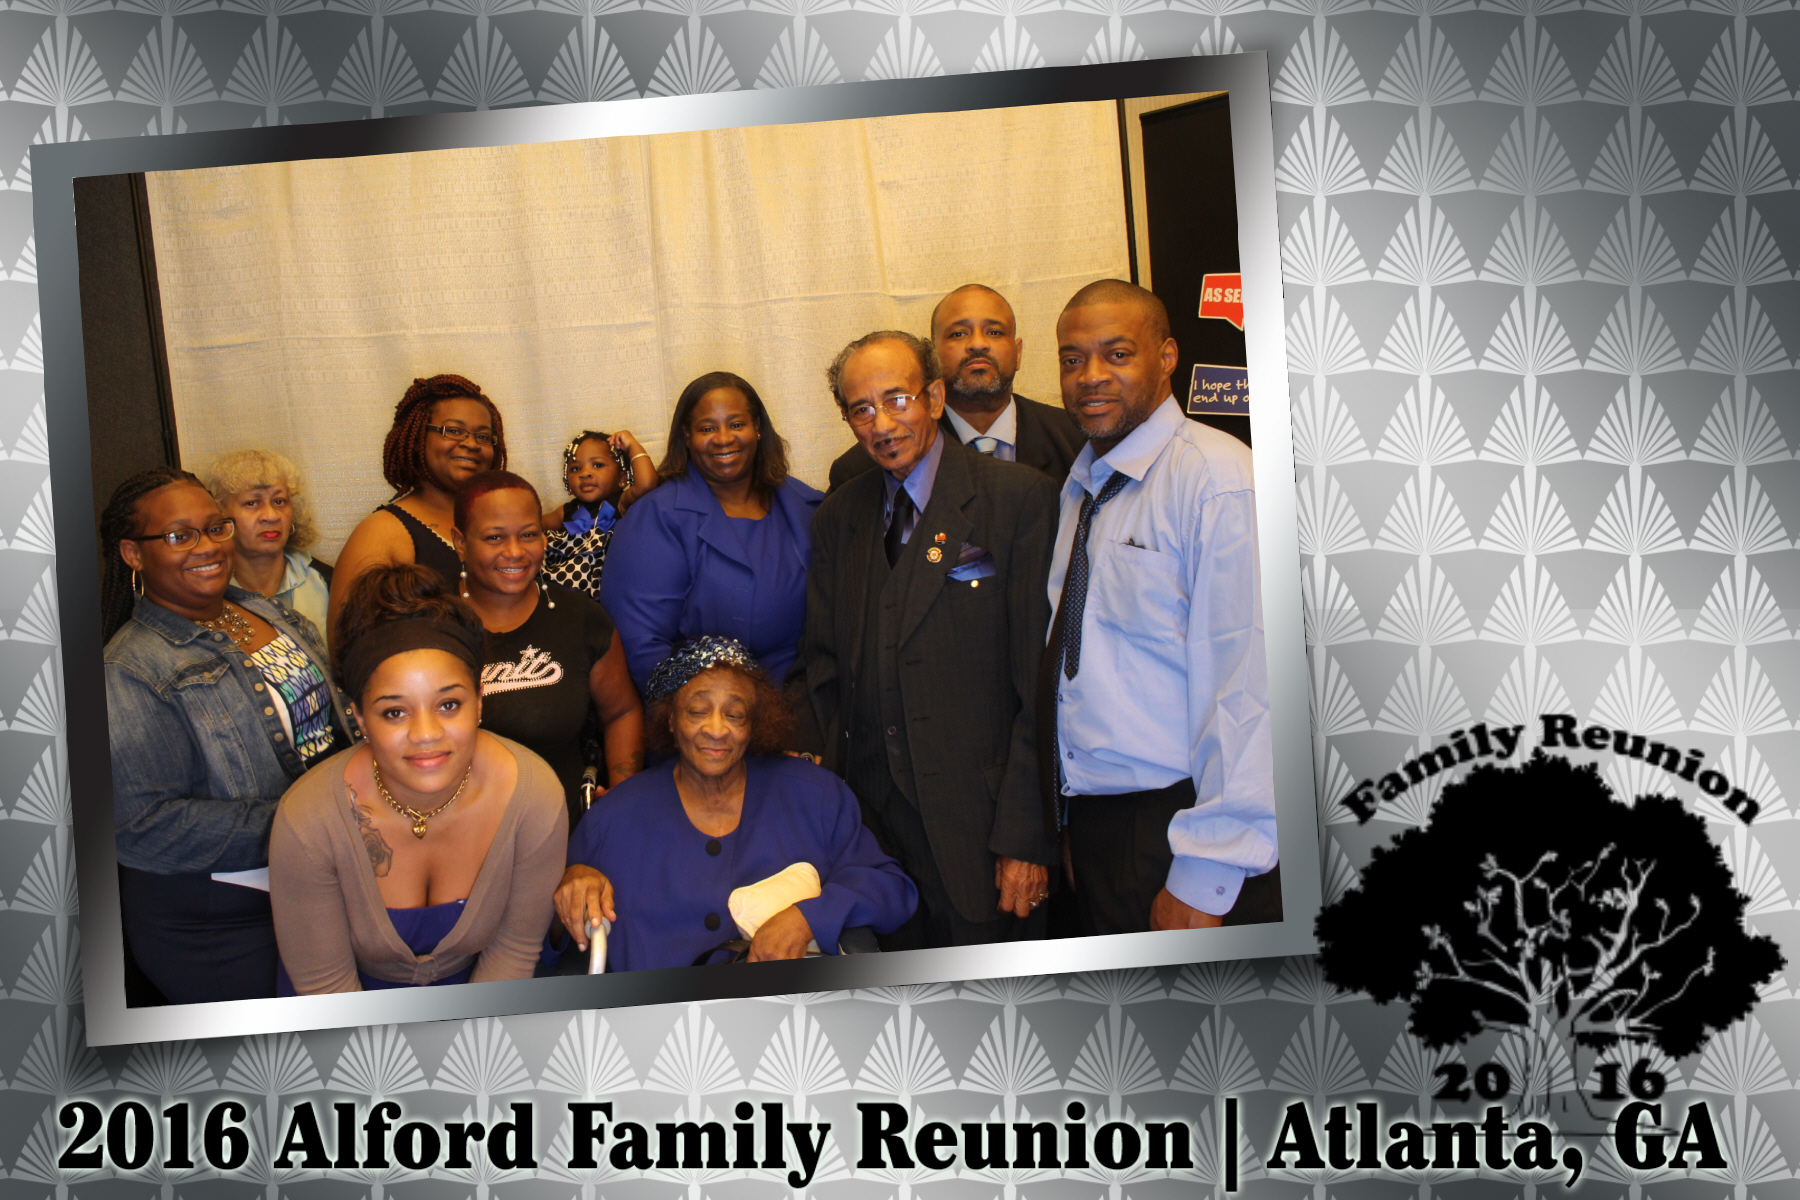 Alford Family Reunion